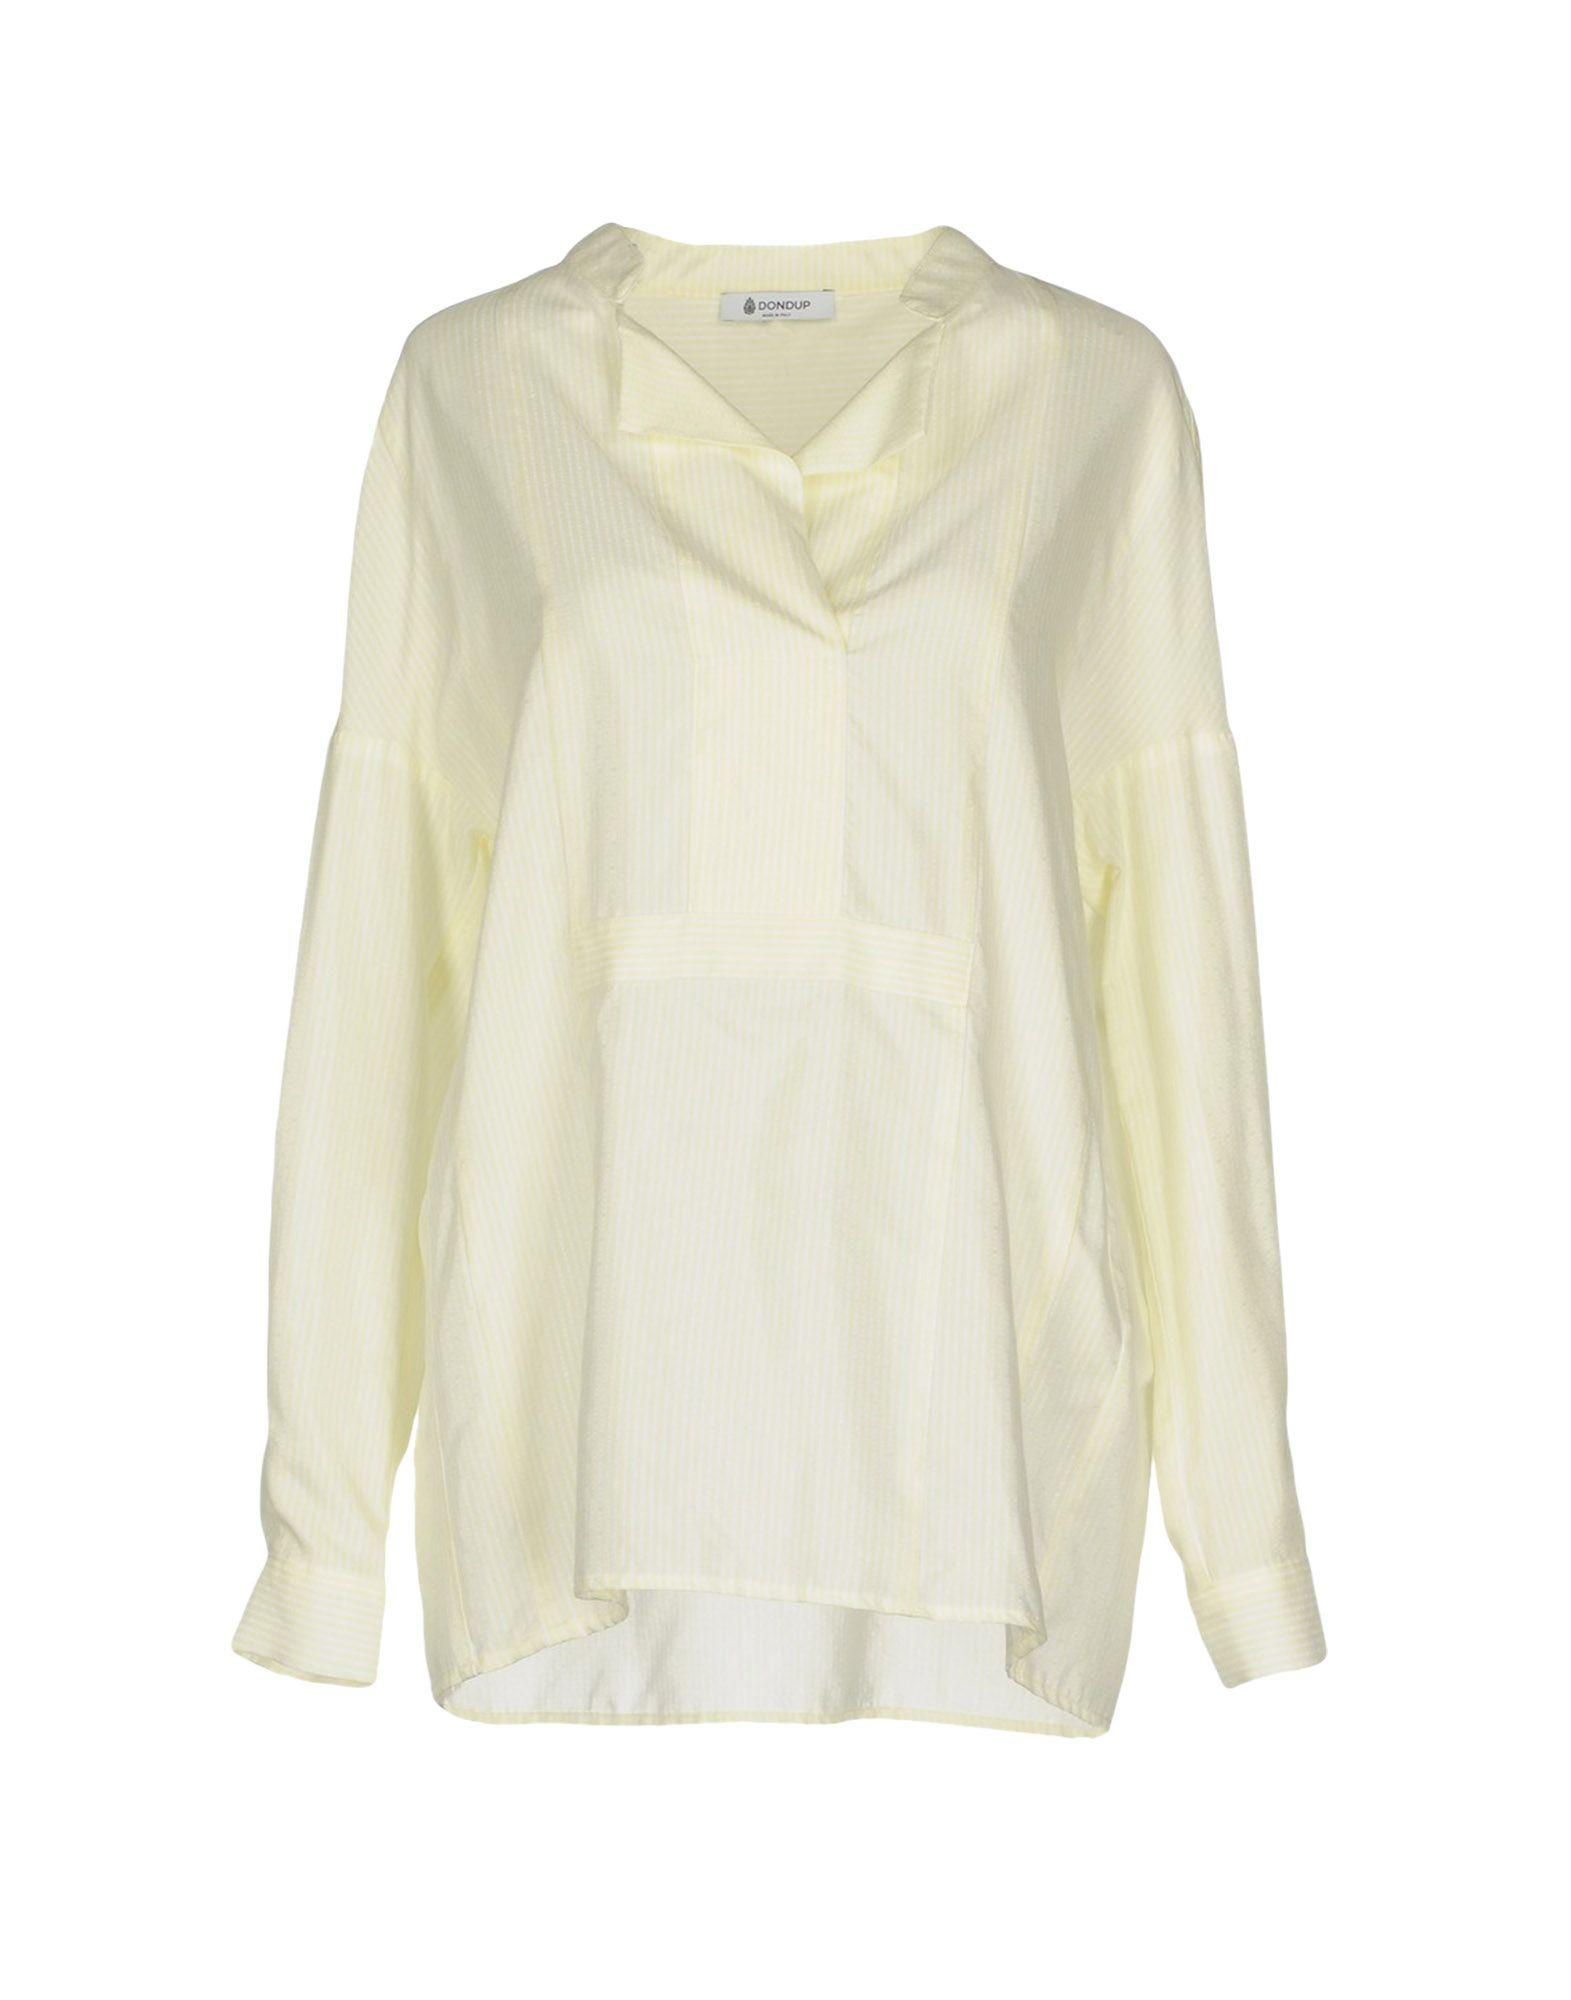 Dondup Blouse In Light Yellow